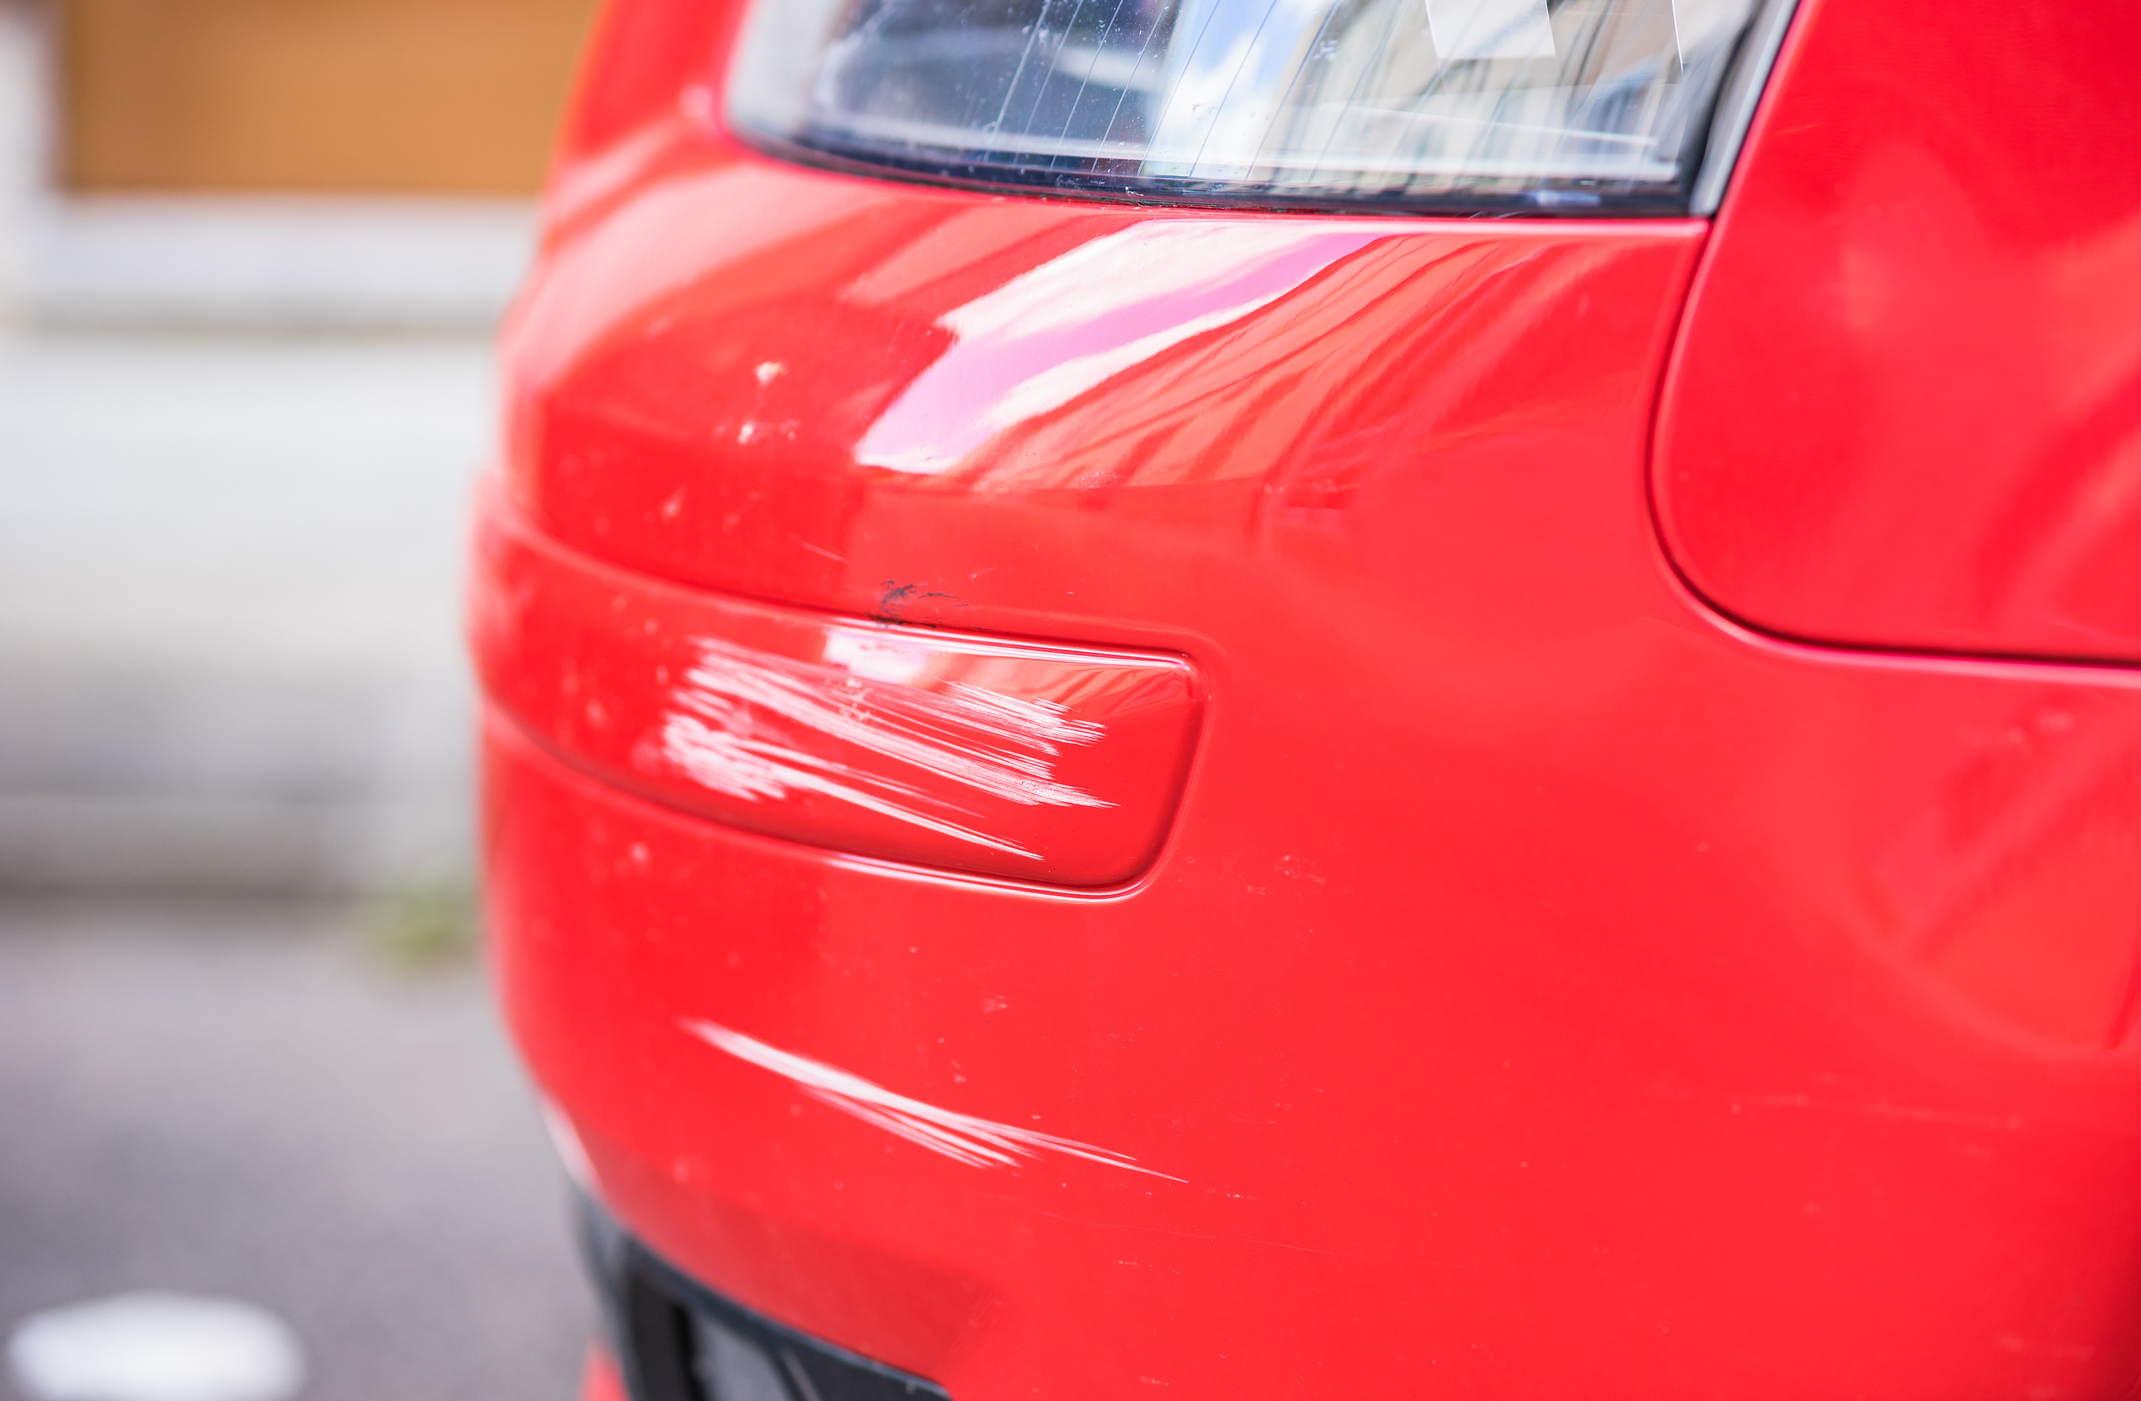 10 Common Causes of Car Paint Damage